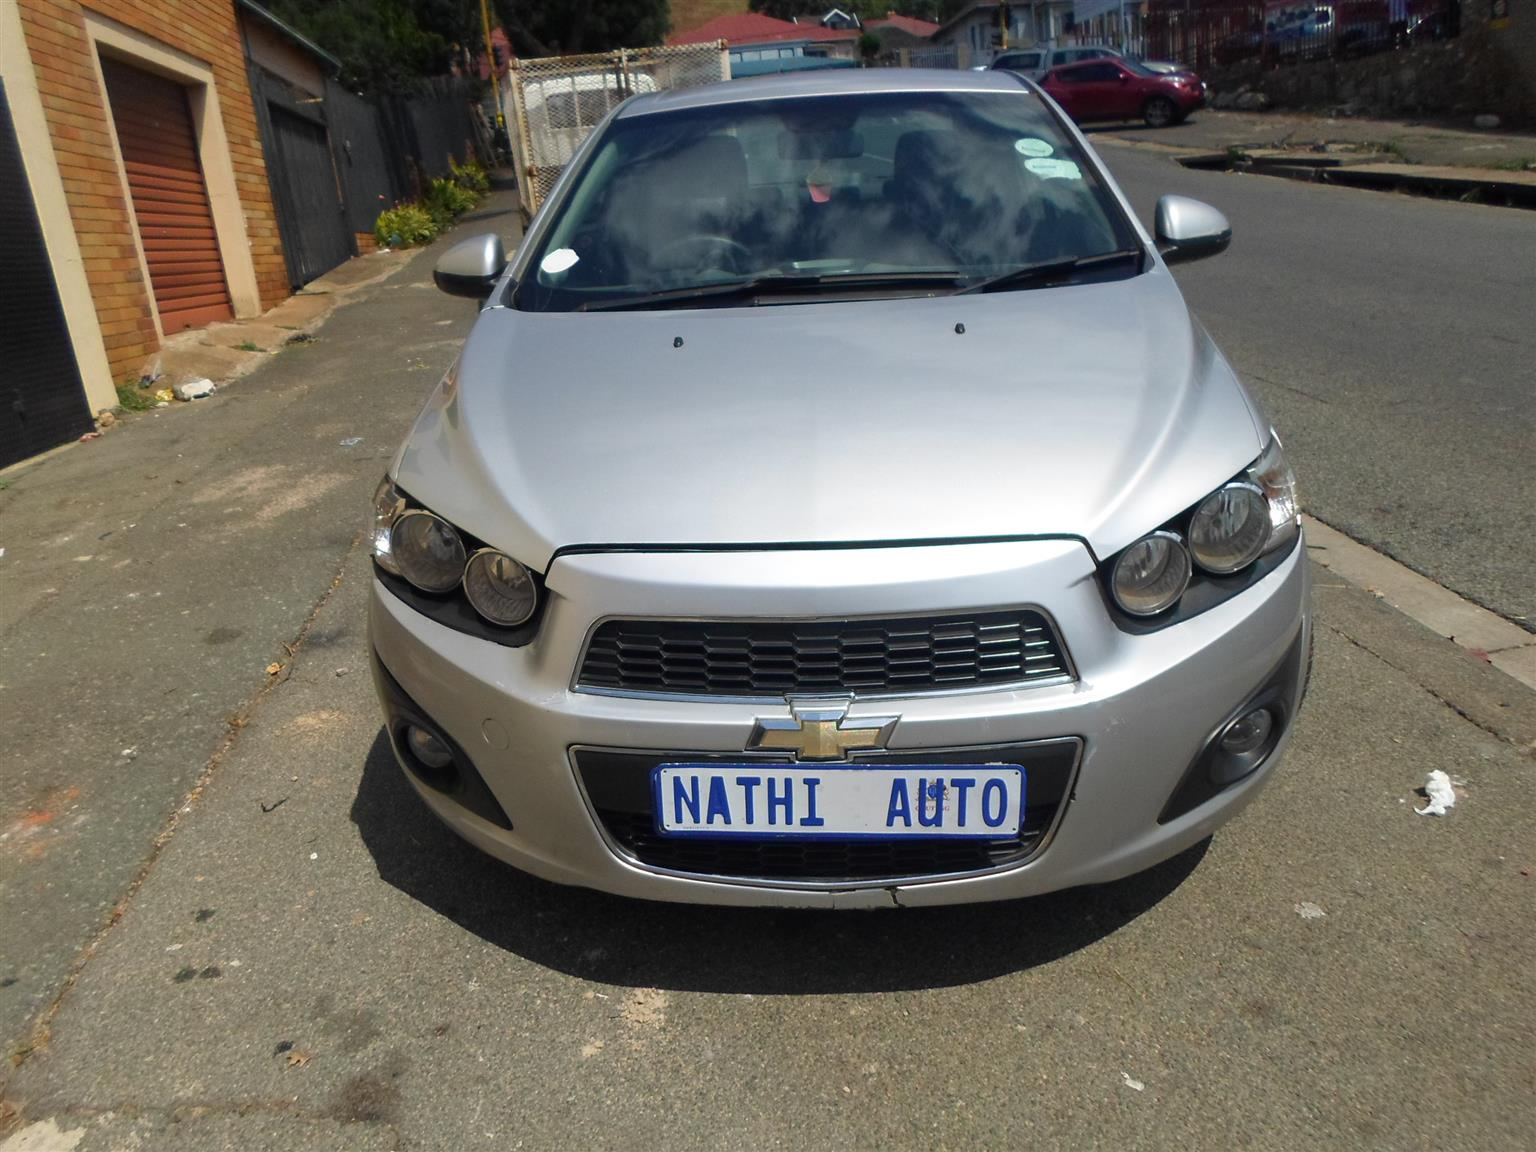 2012 Chevrolet Sonic hatch 1.4T RS